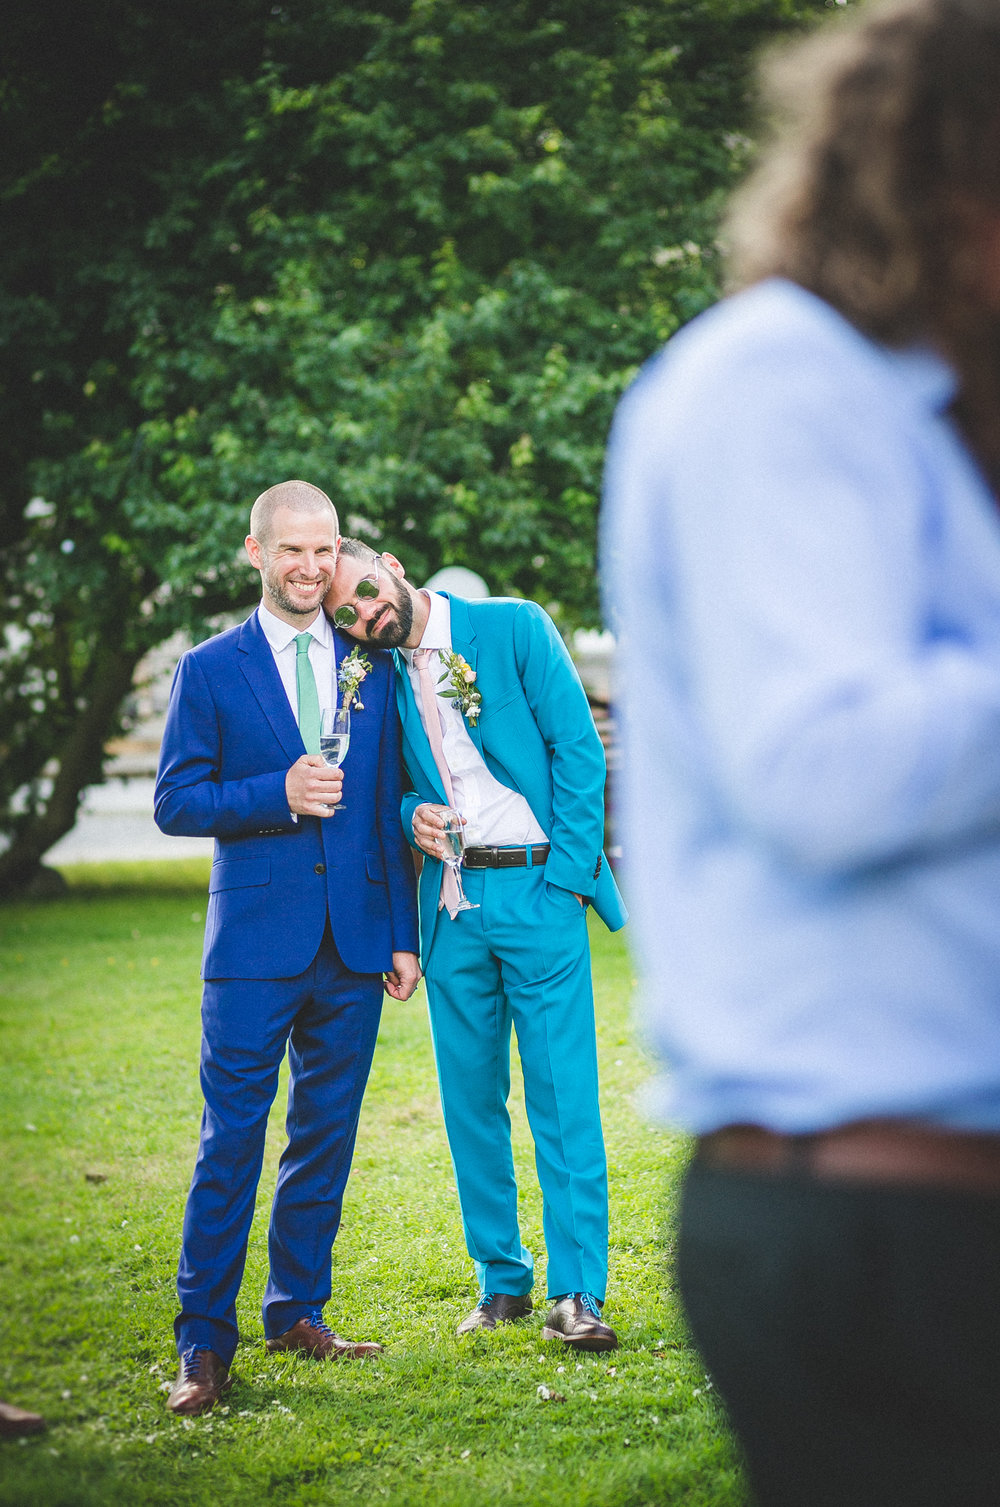 Gay weddings Ireland Millhouse-183.jpg